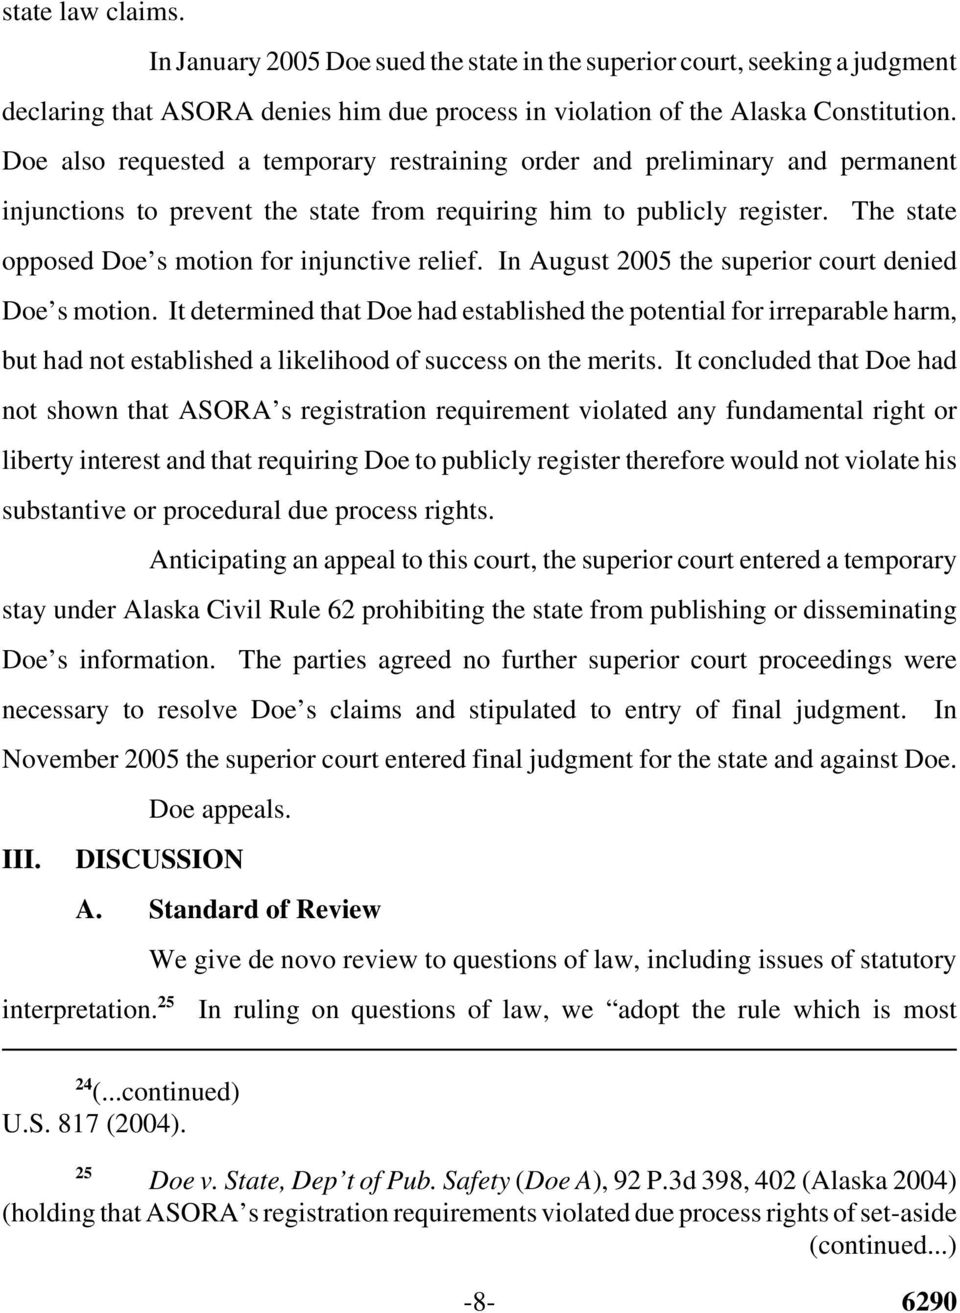 The state opposed Doe s motion for injunctive relief. In August 2005 the superior court denied Doe s motion.